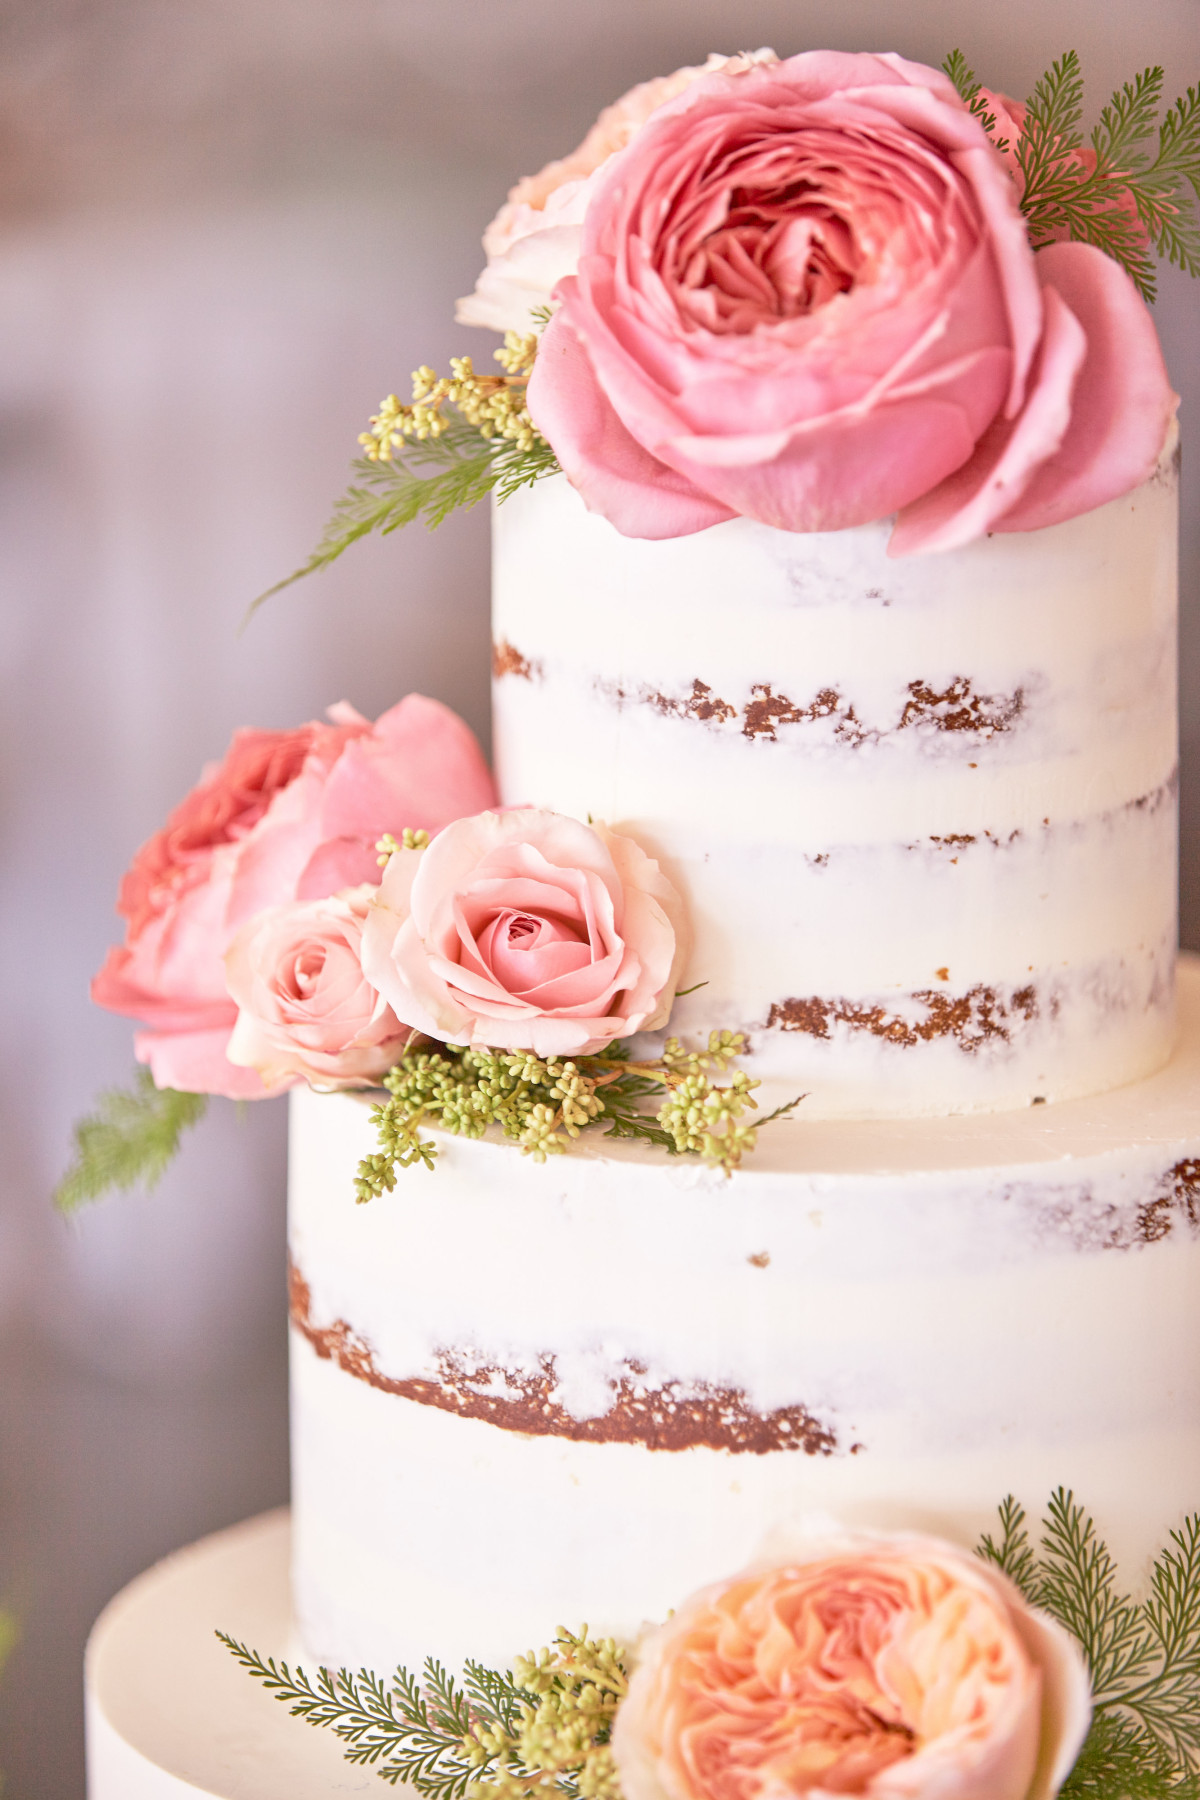 Custom Cake Spotlight: Semi-Naked Cake